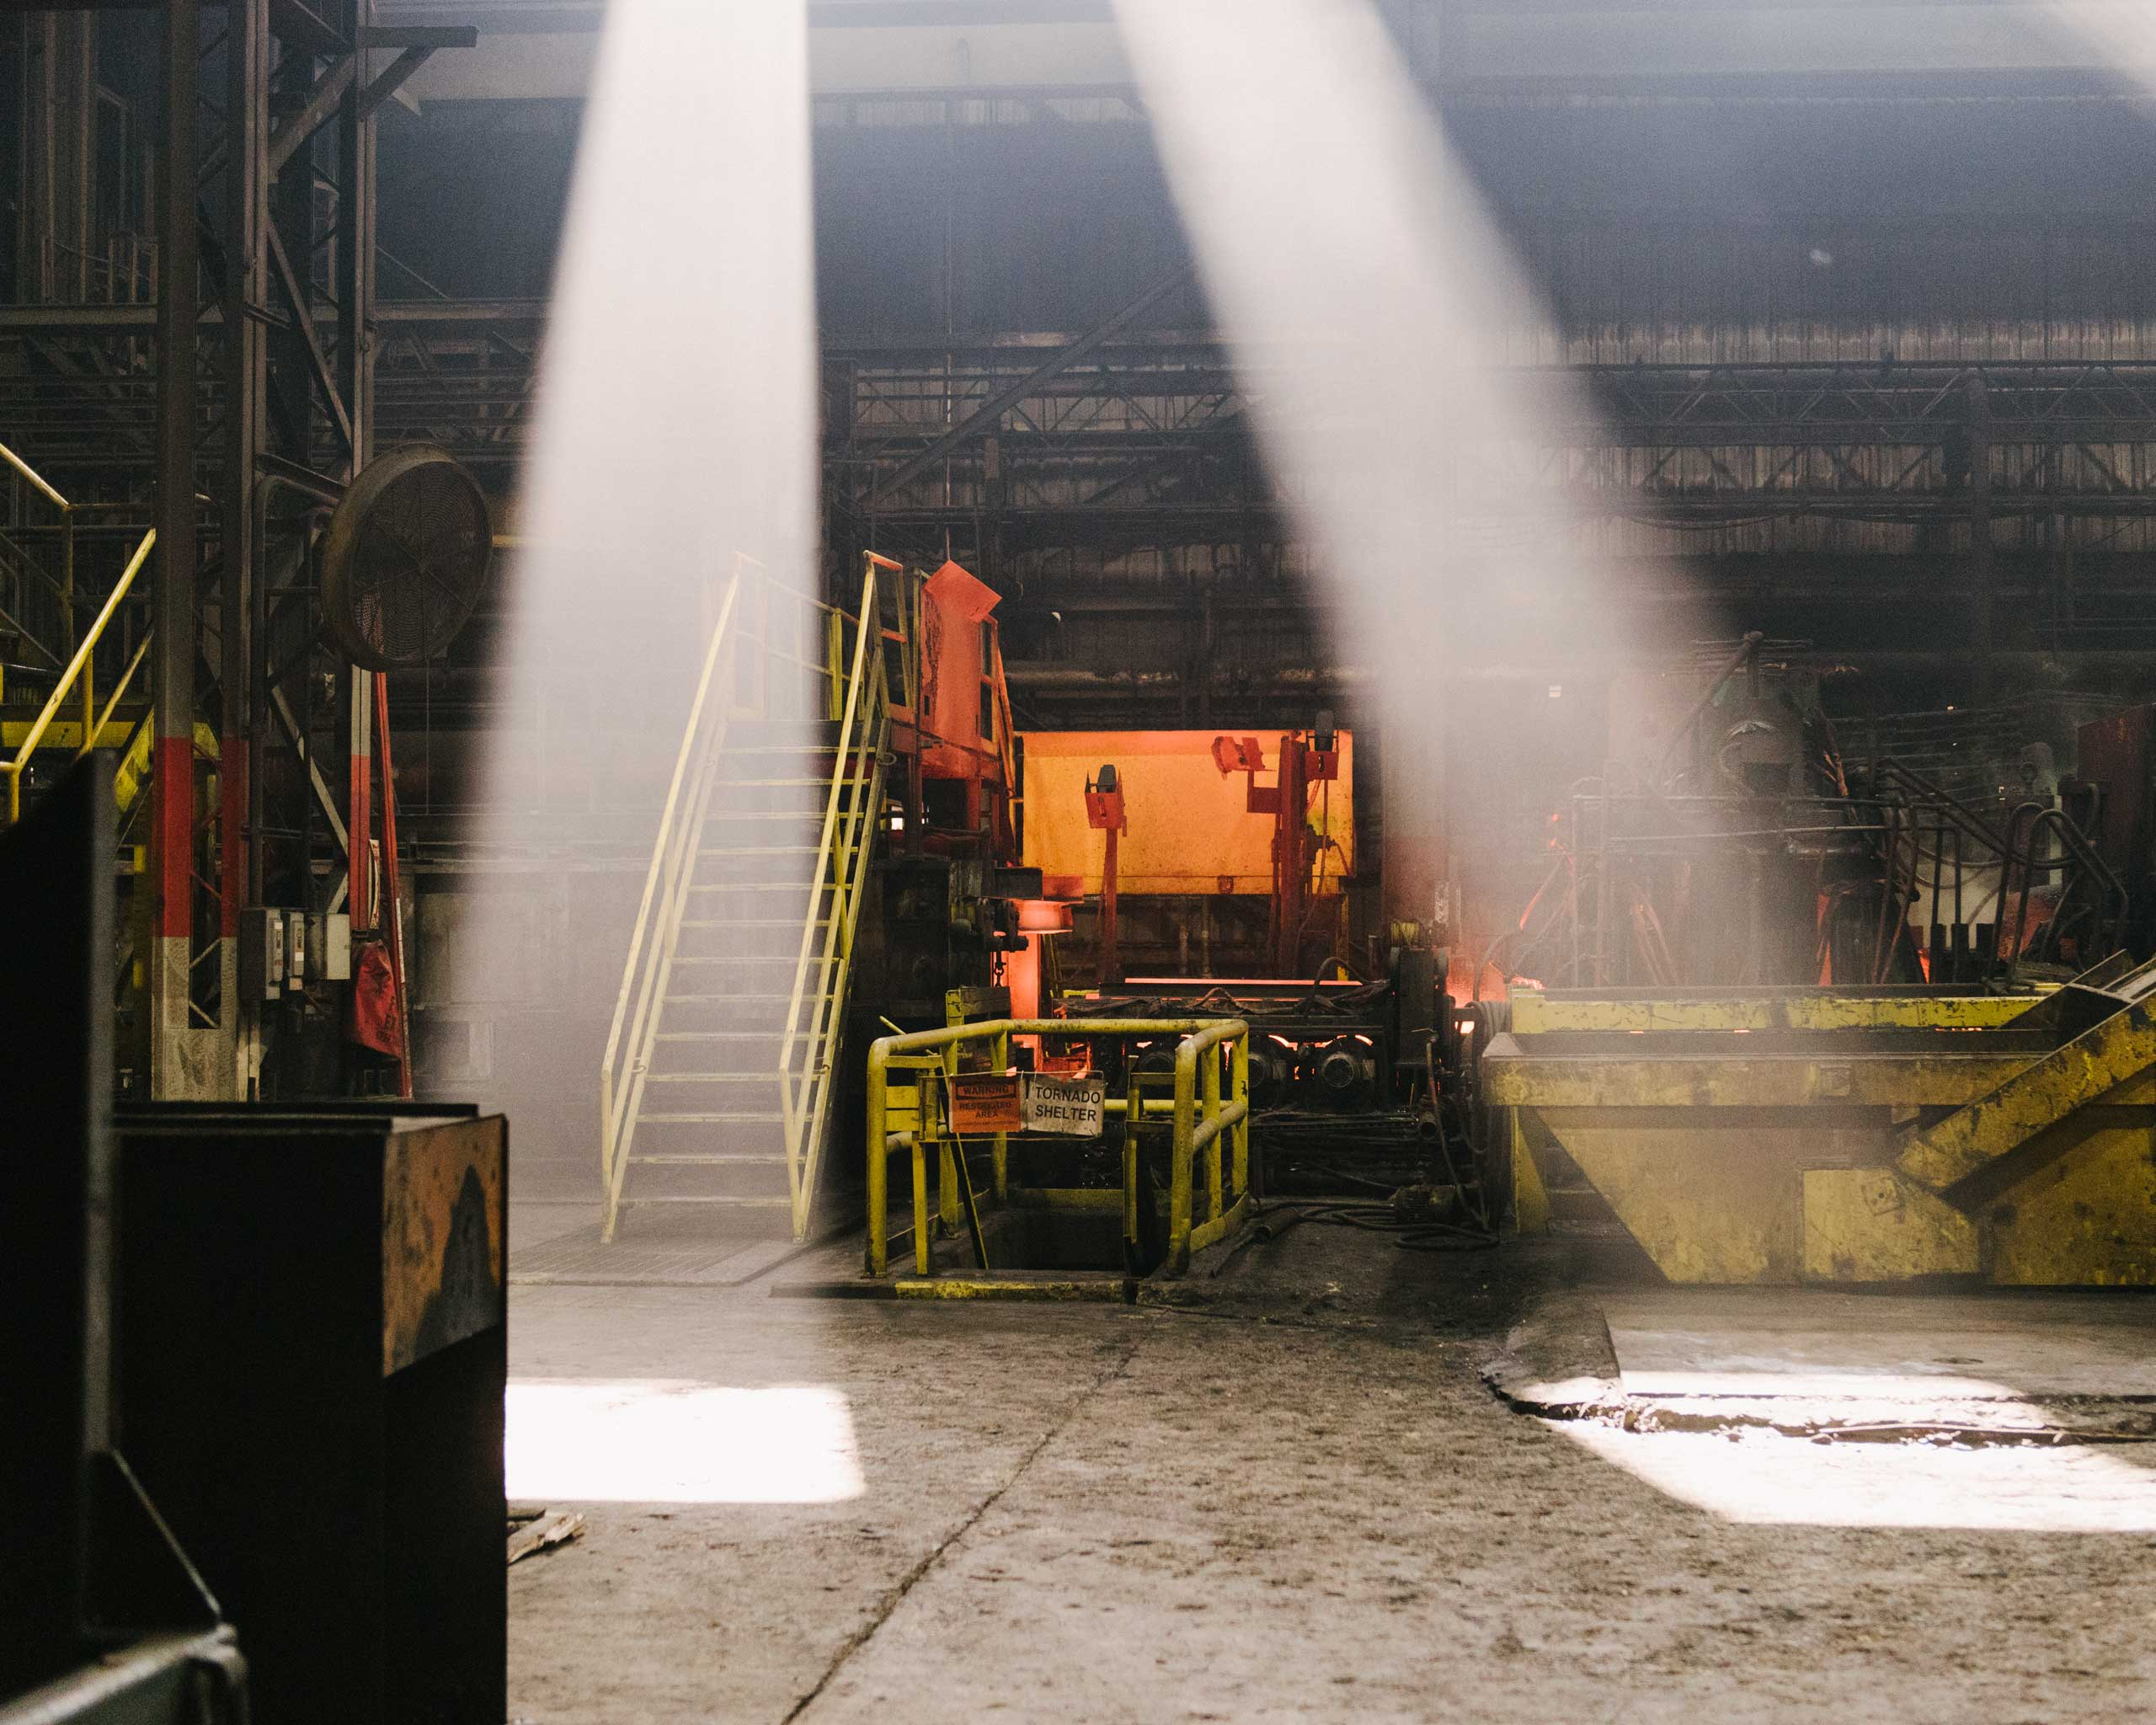 Steel slabs are prepared in this chamber before they are thinned into long sheets, Crawfordsville, Ind. on Aug. 25, 2014.